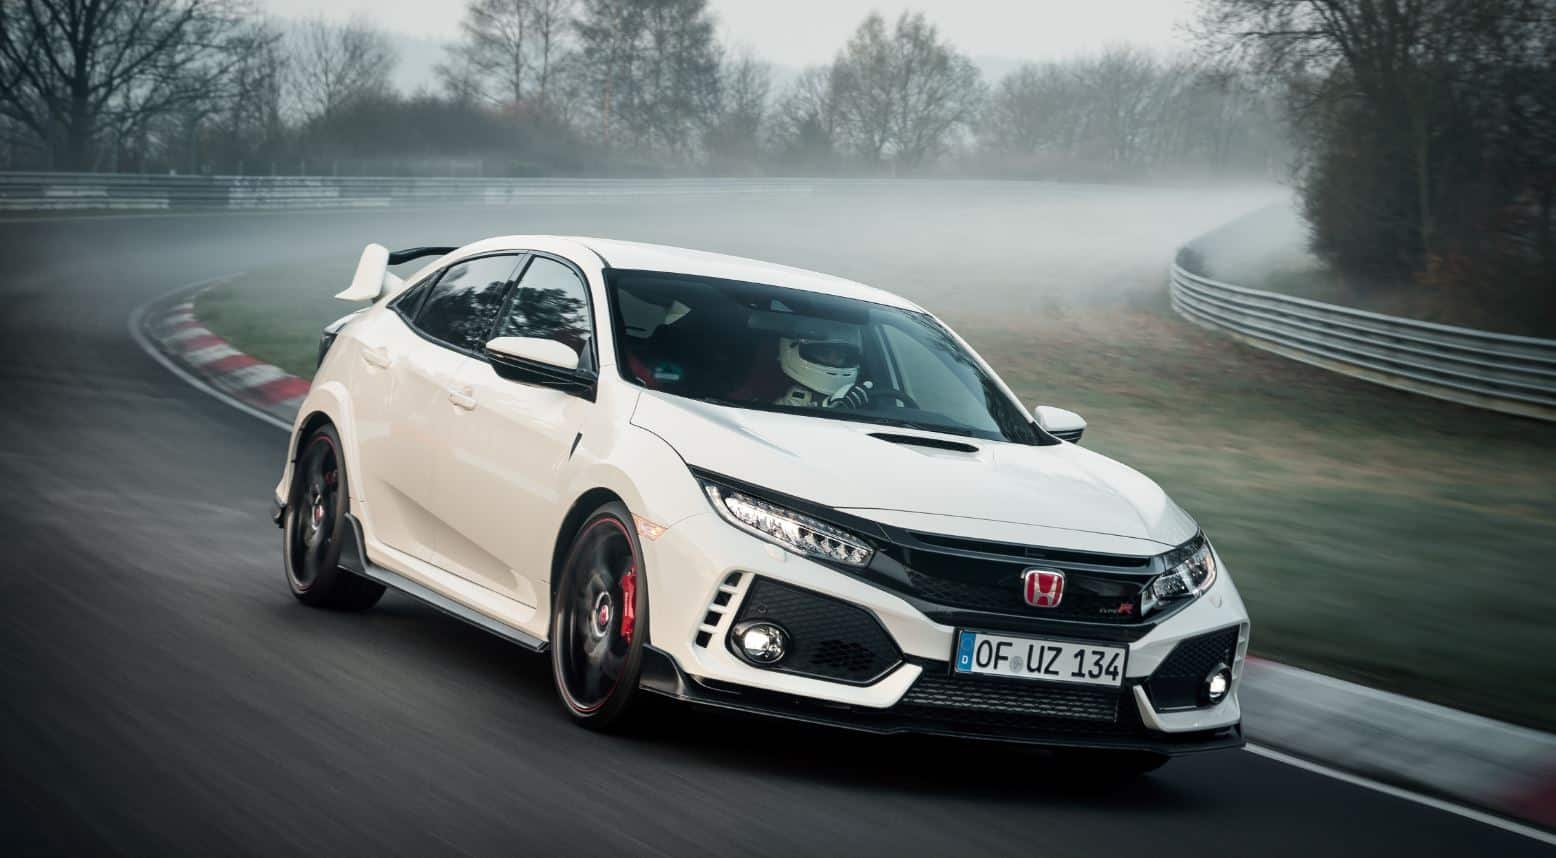 honda civic type r Nürburgring 8